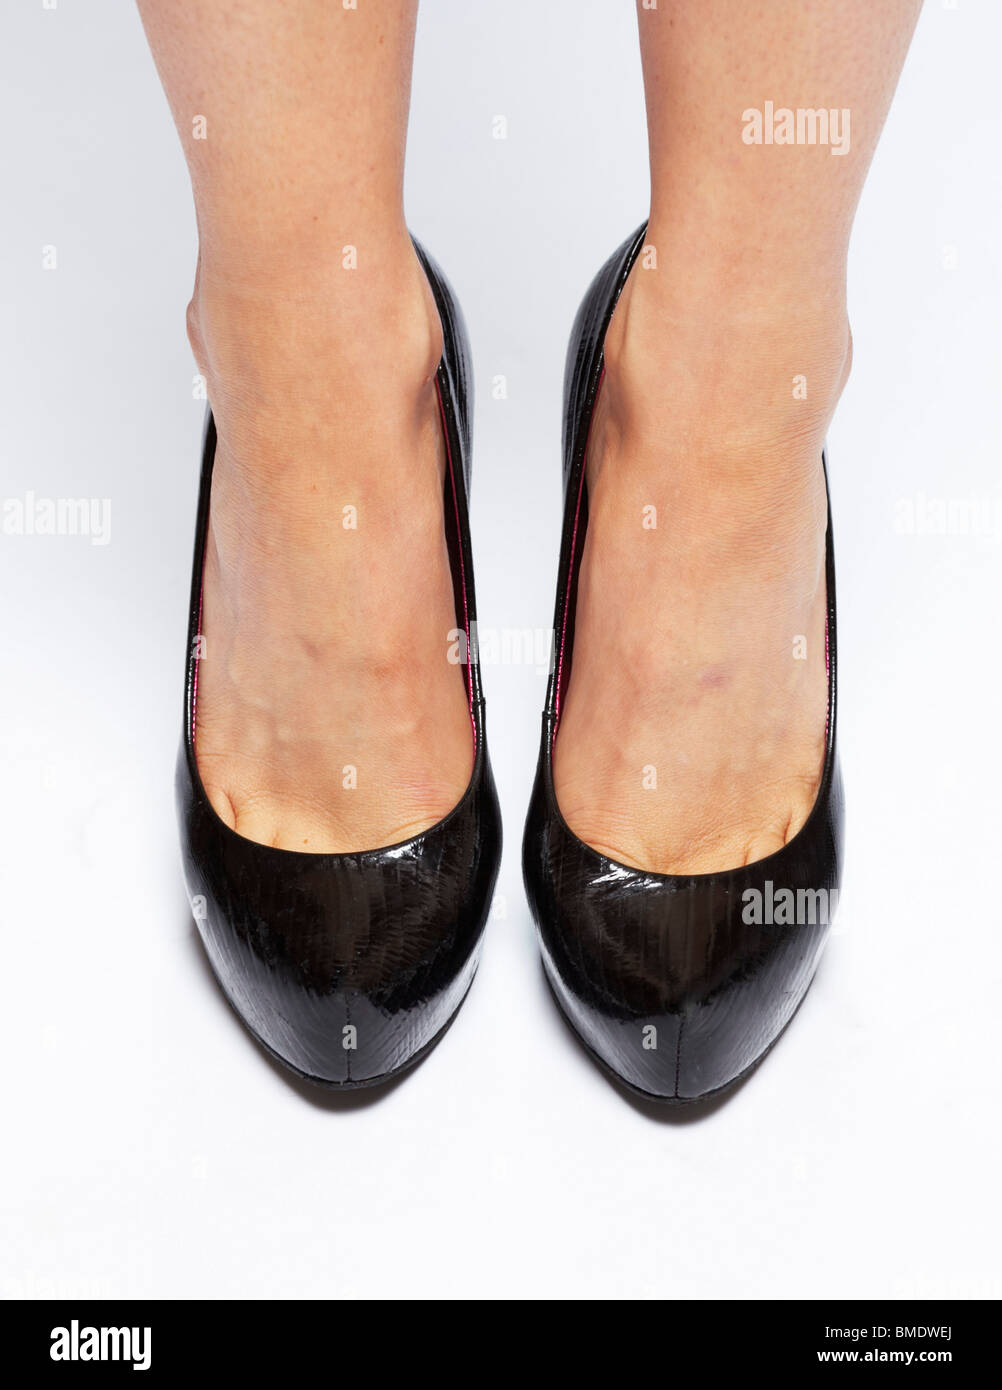 28085d8e719 Heels Together Stock Photos   Heels Together Stock Images - Alamy